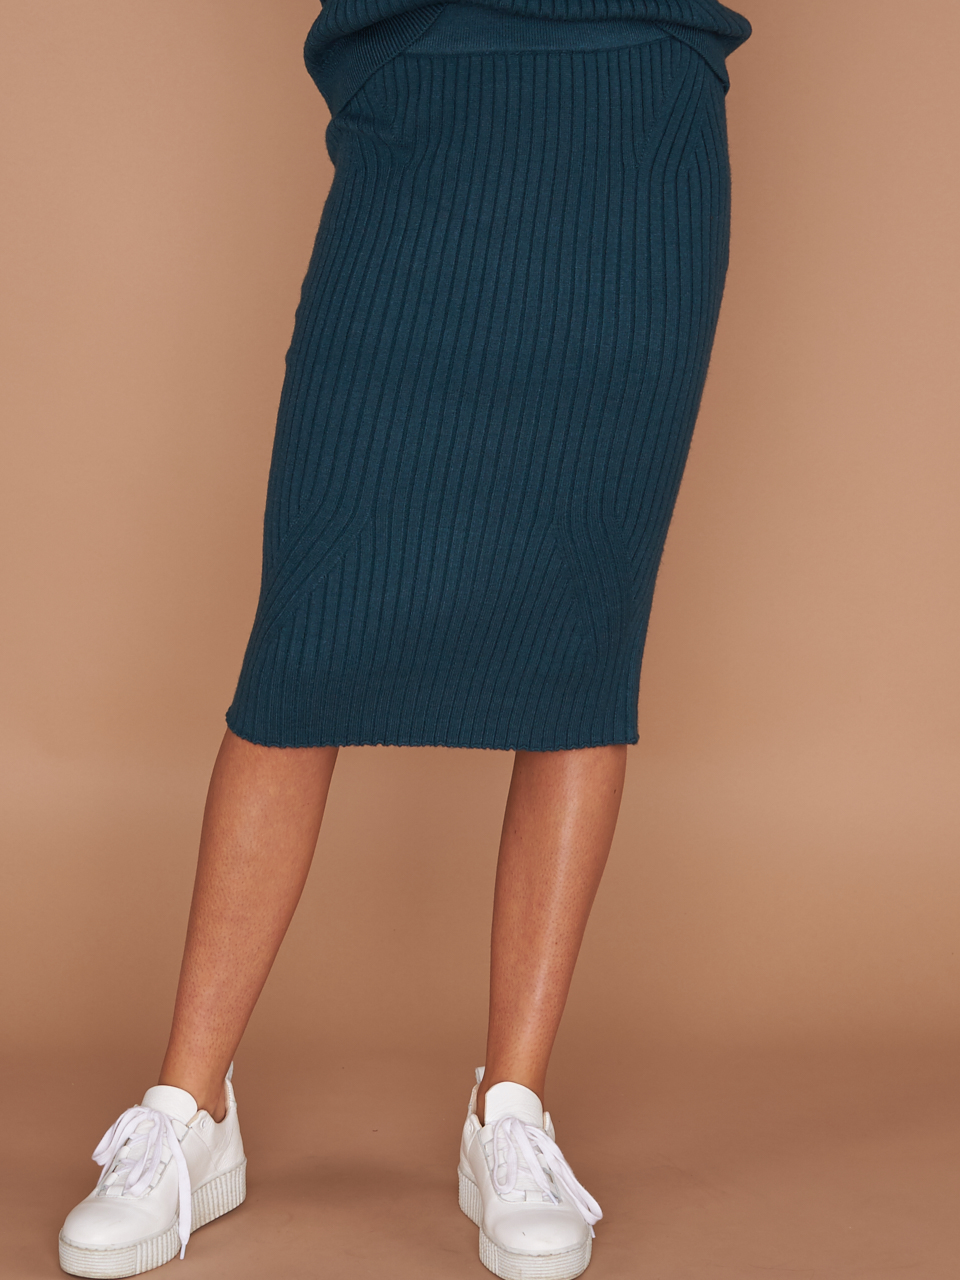 SKIRT SFSITKA MW KNIT